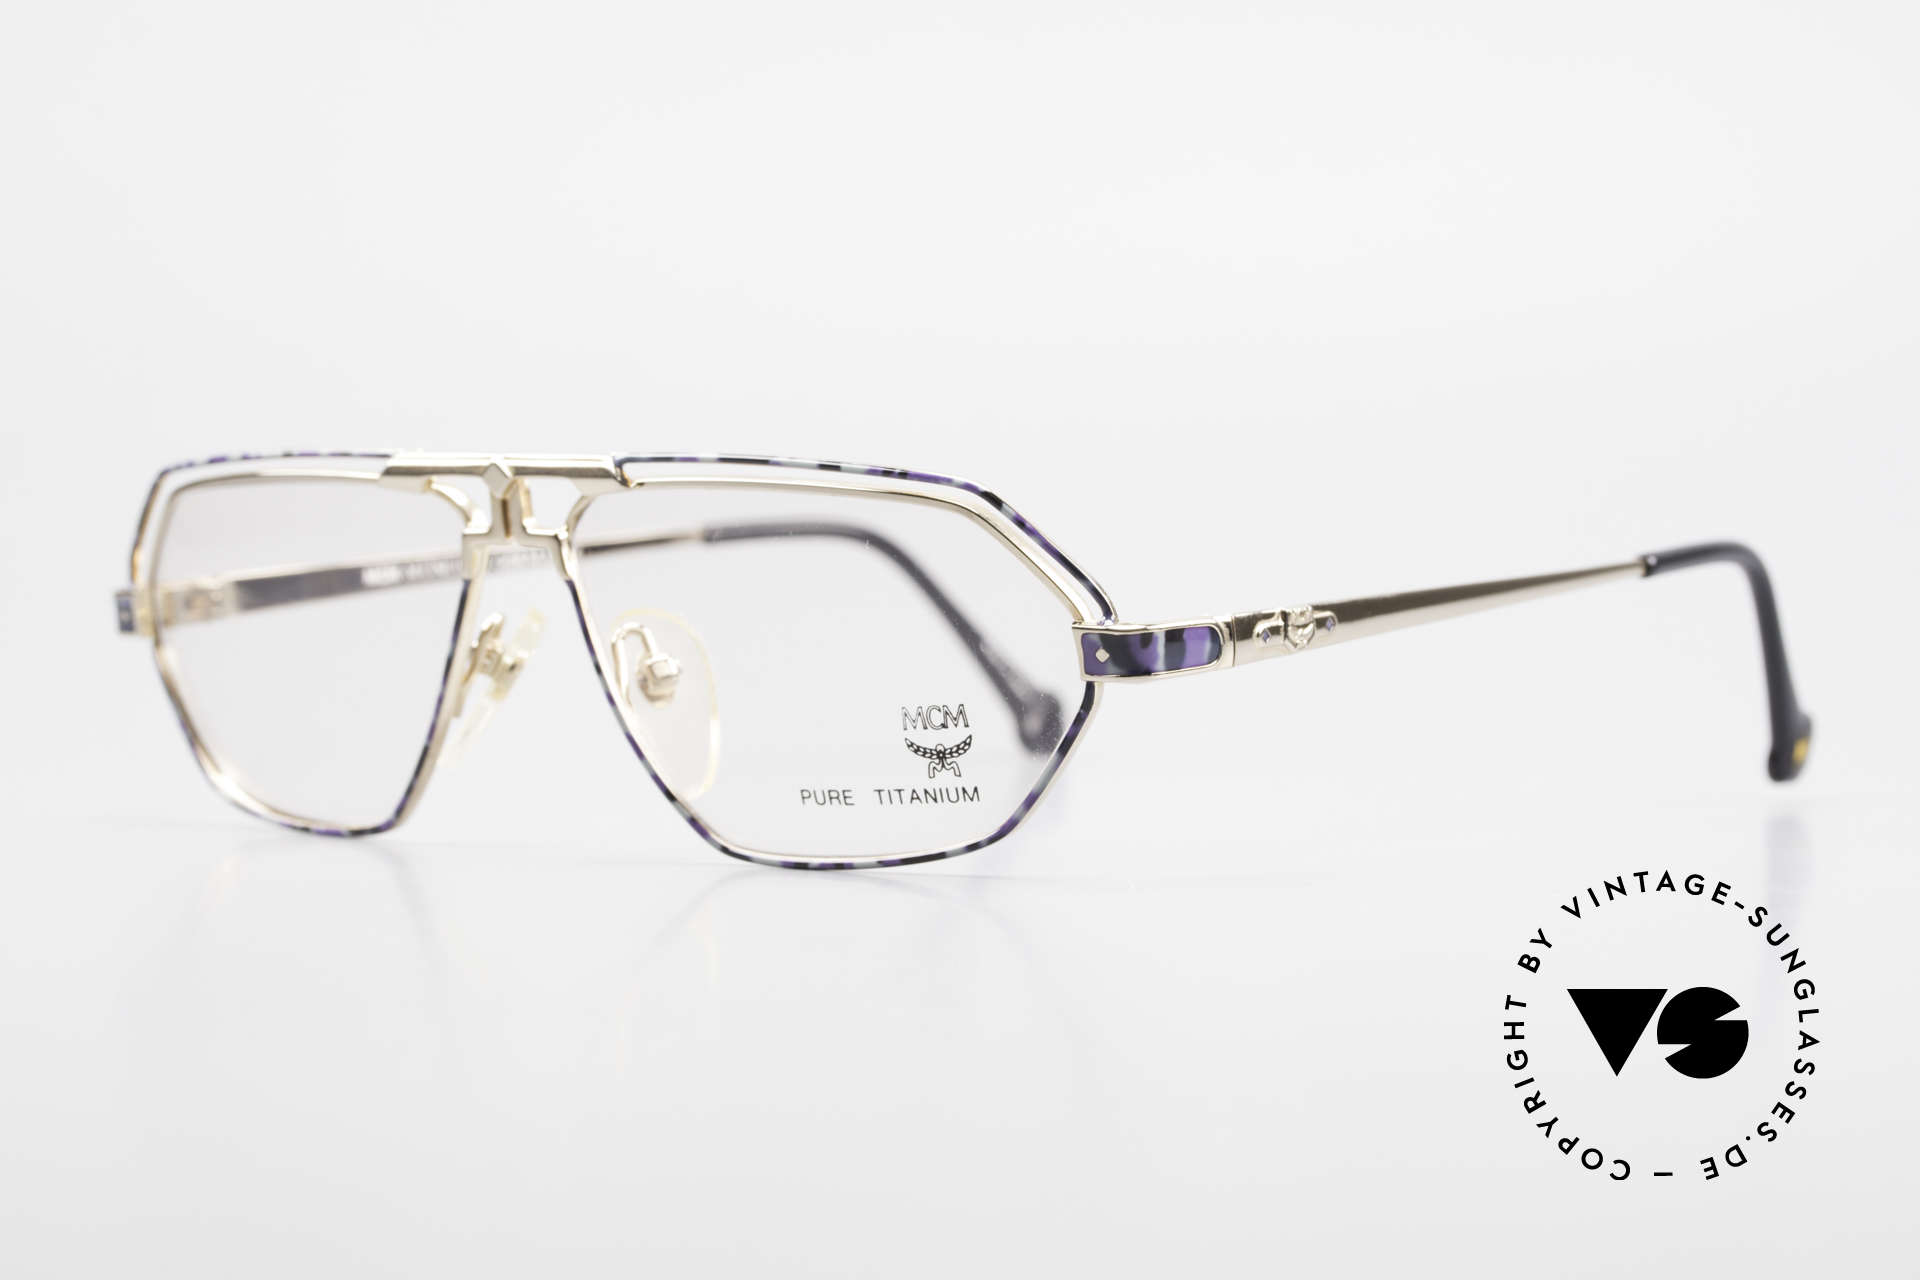 MCM München 13 Titanium Frame Blue Patterned, luxury eyeglasses by Michael Cromer (MC), Munich (M), Made for Men and Women